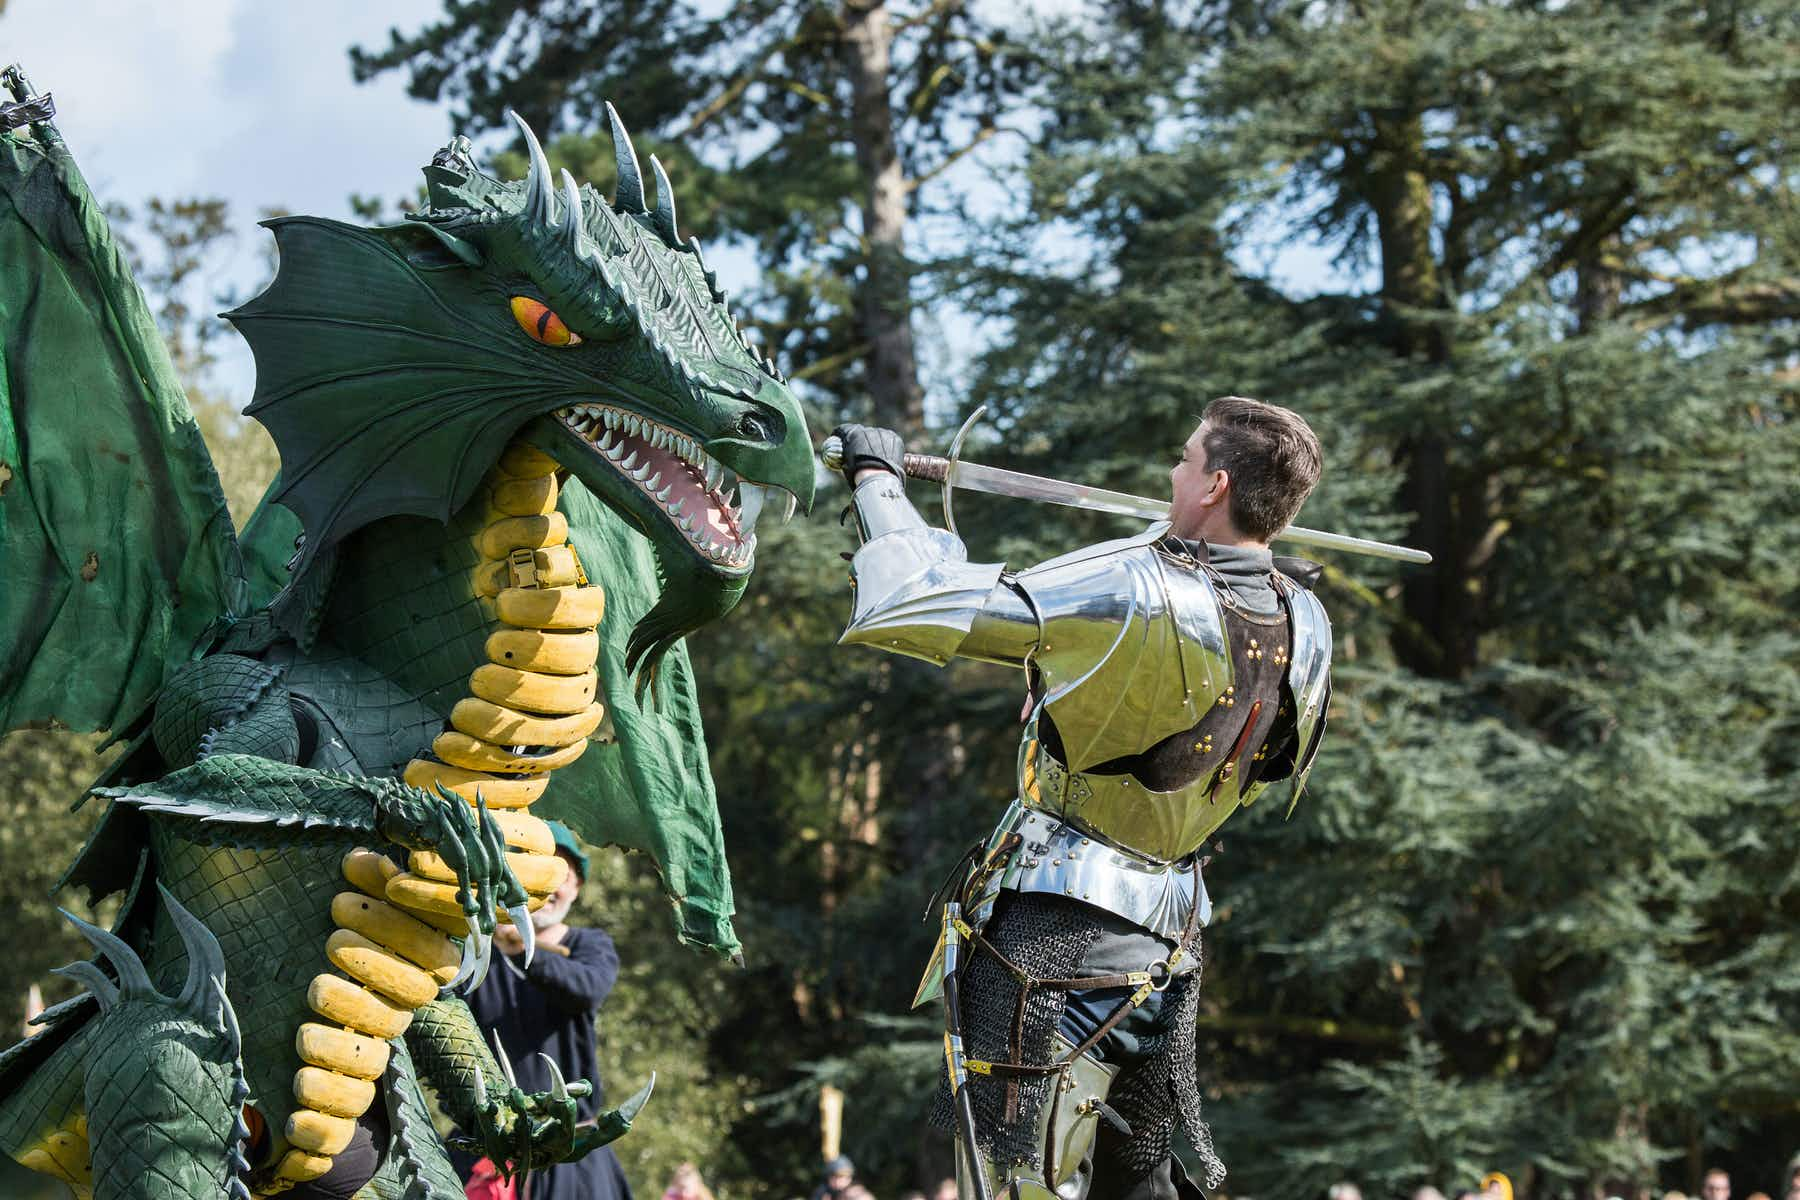 England to celebrate St George's Day with dragons, jousting and Shakespeare